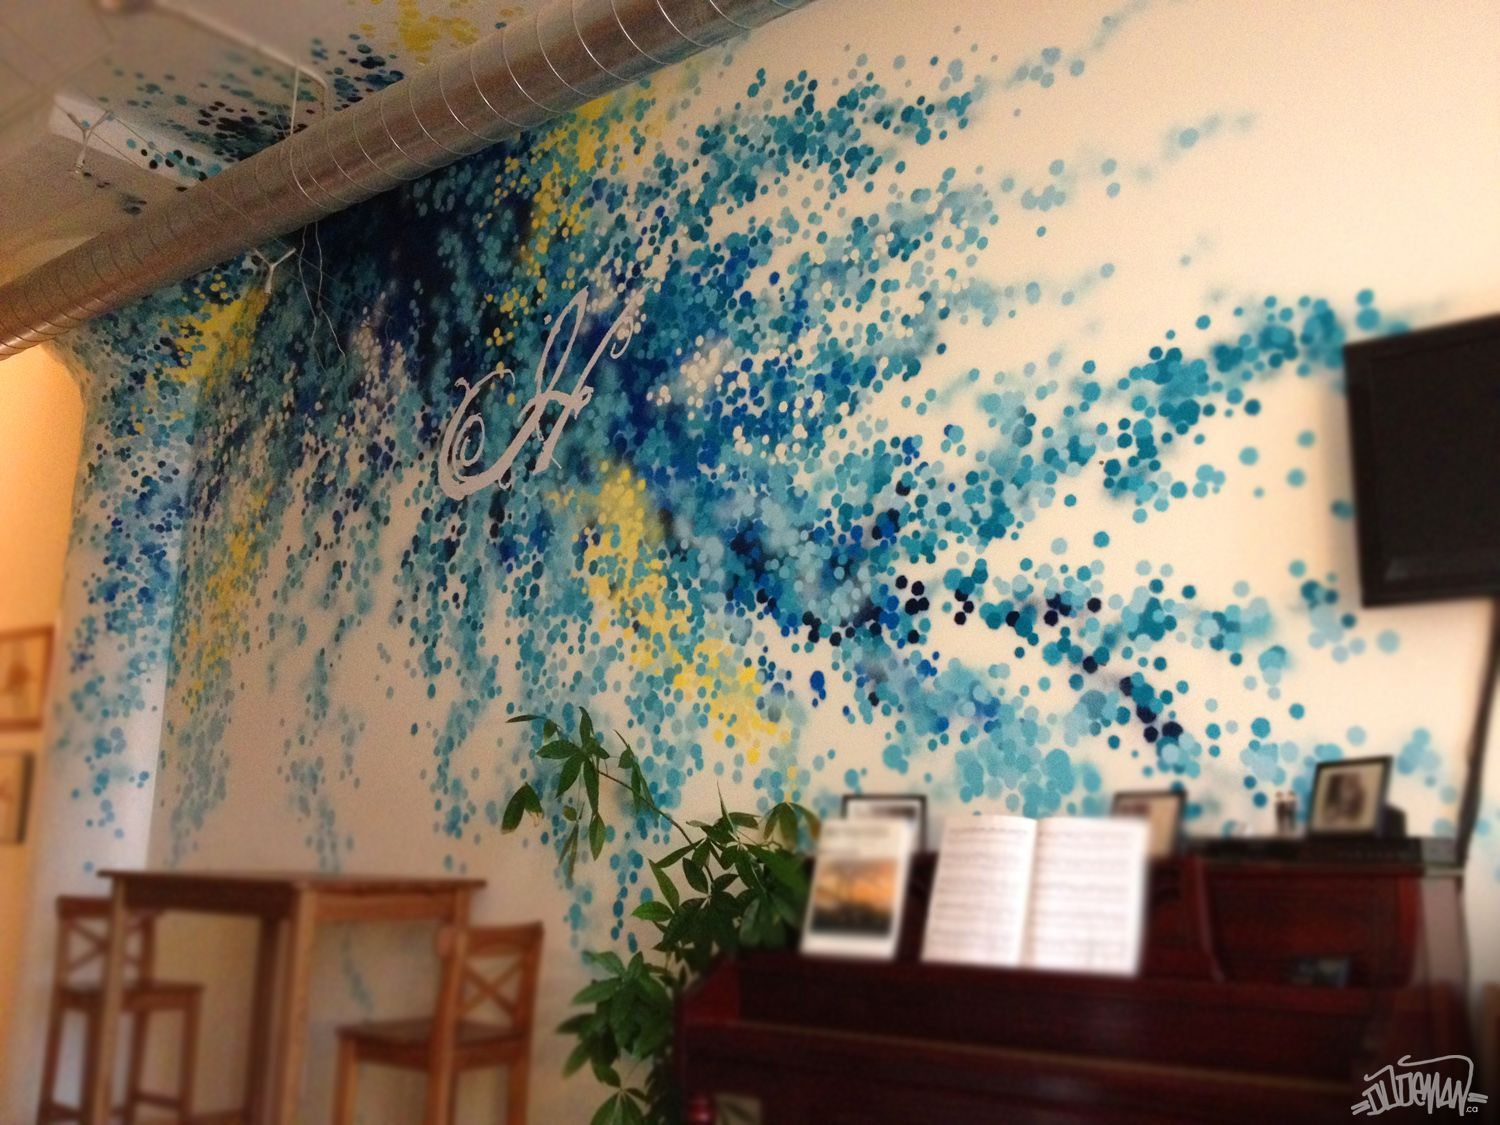 Images Of Painted Walls With Spray Bottle Dudeman S Blog